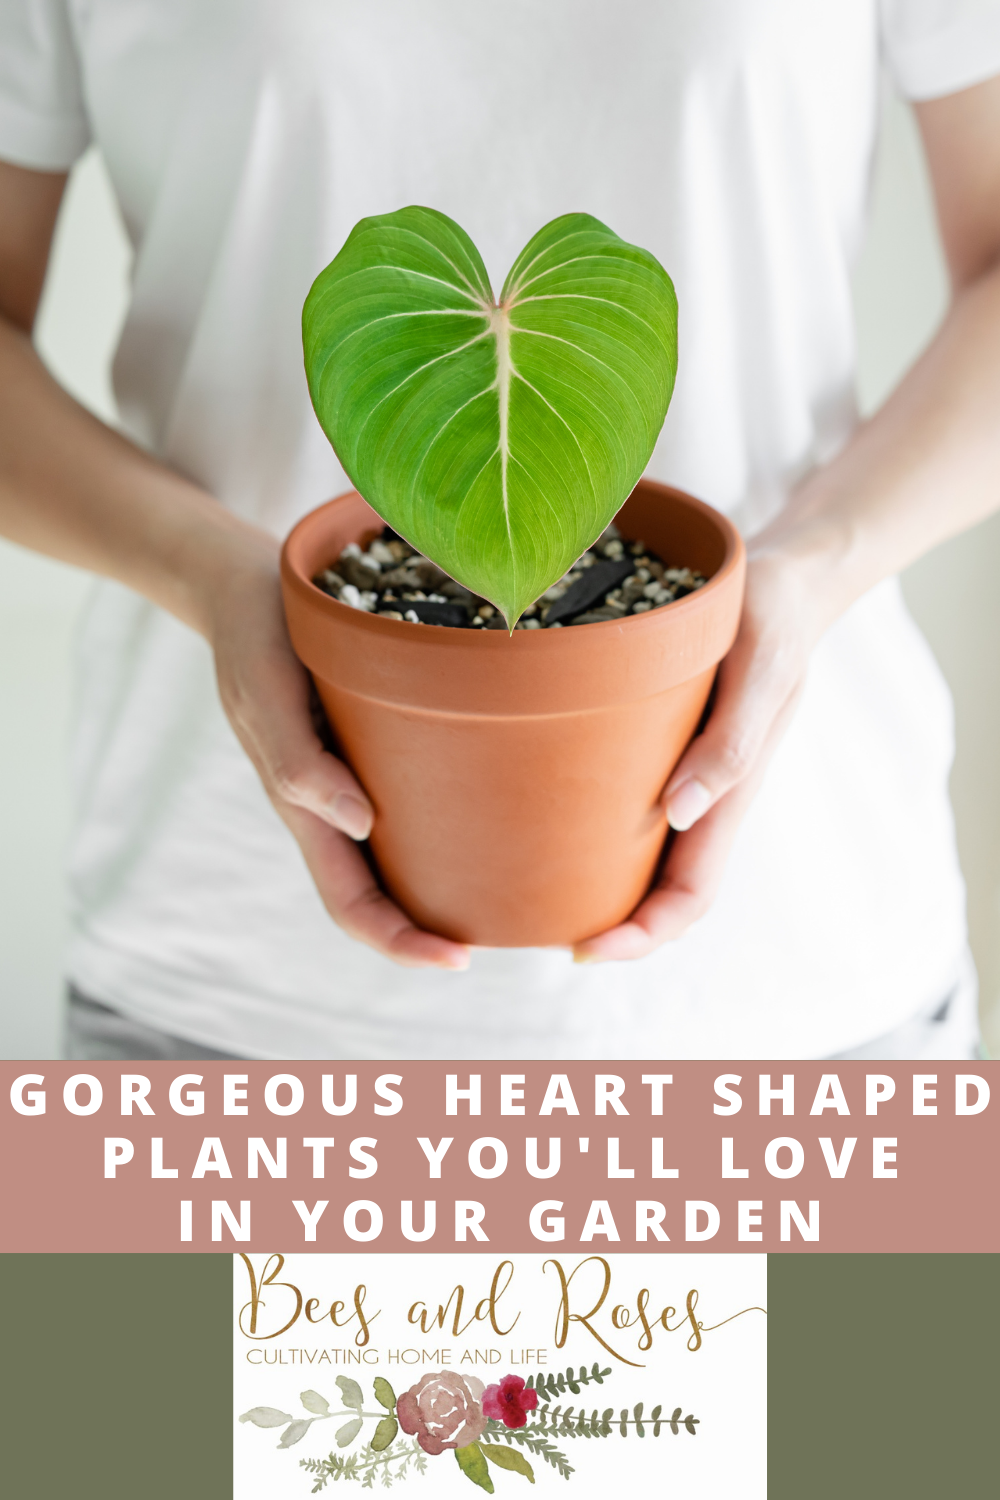 Beesandroses.com is the place to go to find helpful gardening tips. Learn what to grow and how to grow it! Make your garden a little sweeter by adding some of these heart shaped plants you'll fall in love with!